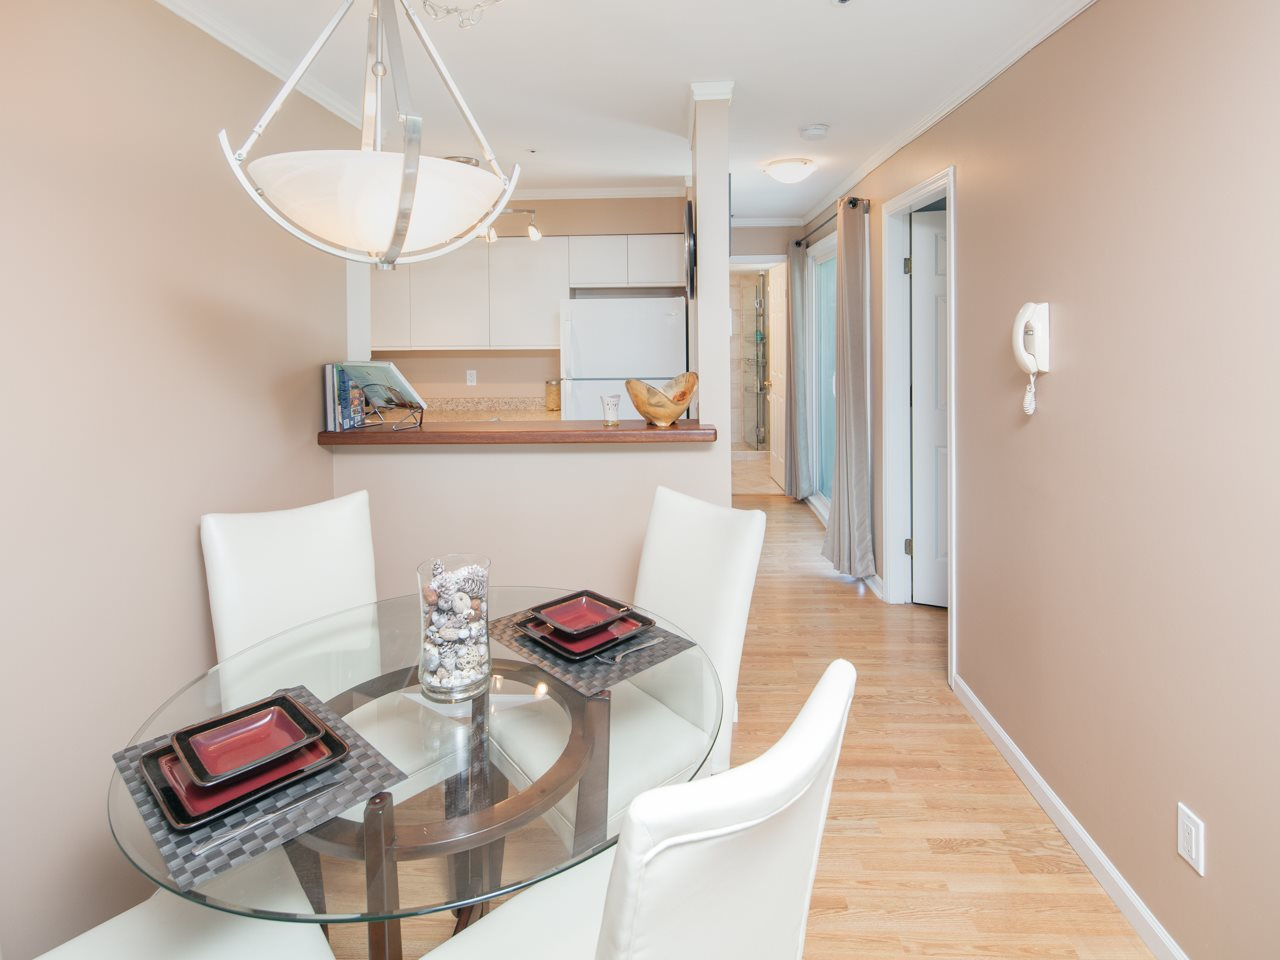 "Photo 8: 204 3505 W BROADWAY in Vancouver: Kitsilano Condo for sale in ""Collingwood Place"" (Vancouver West)  : MLS(r) # R2188784"